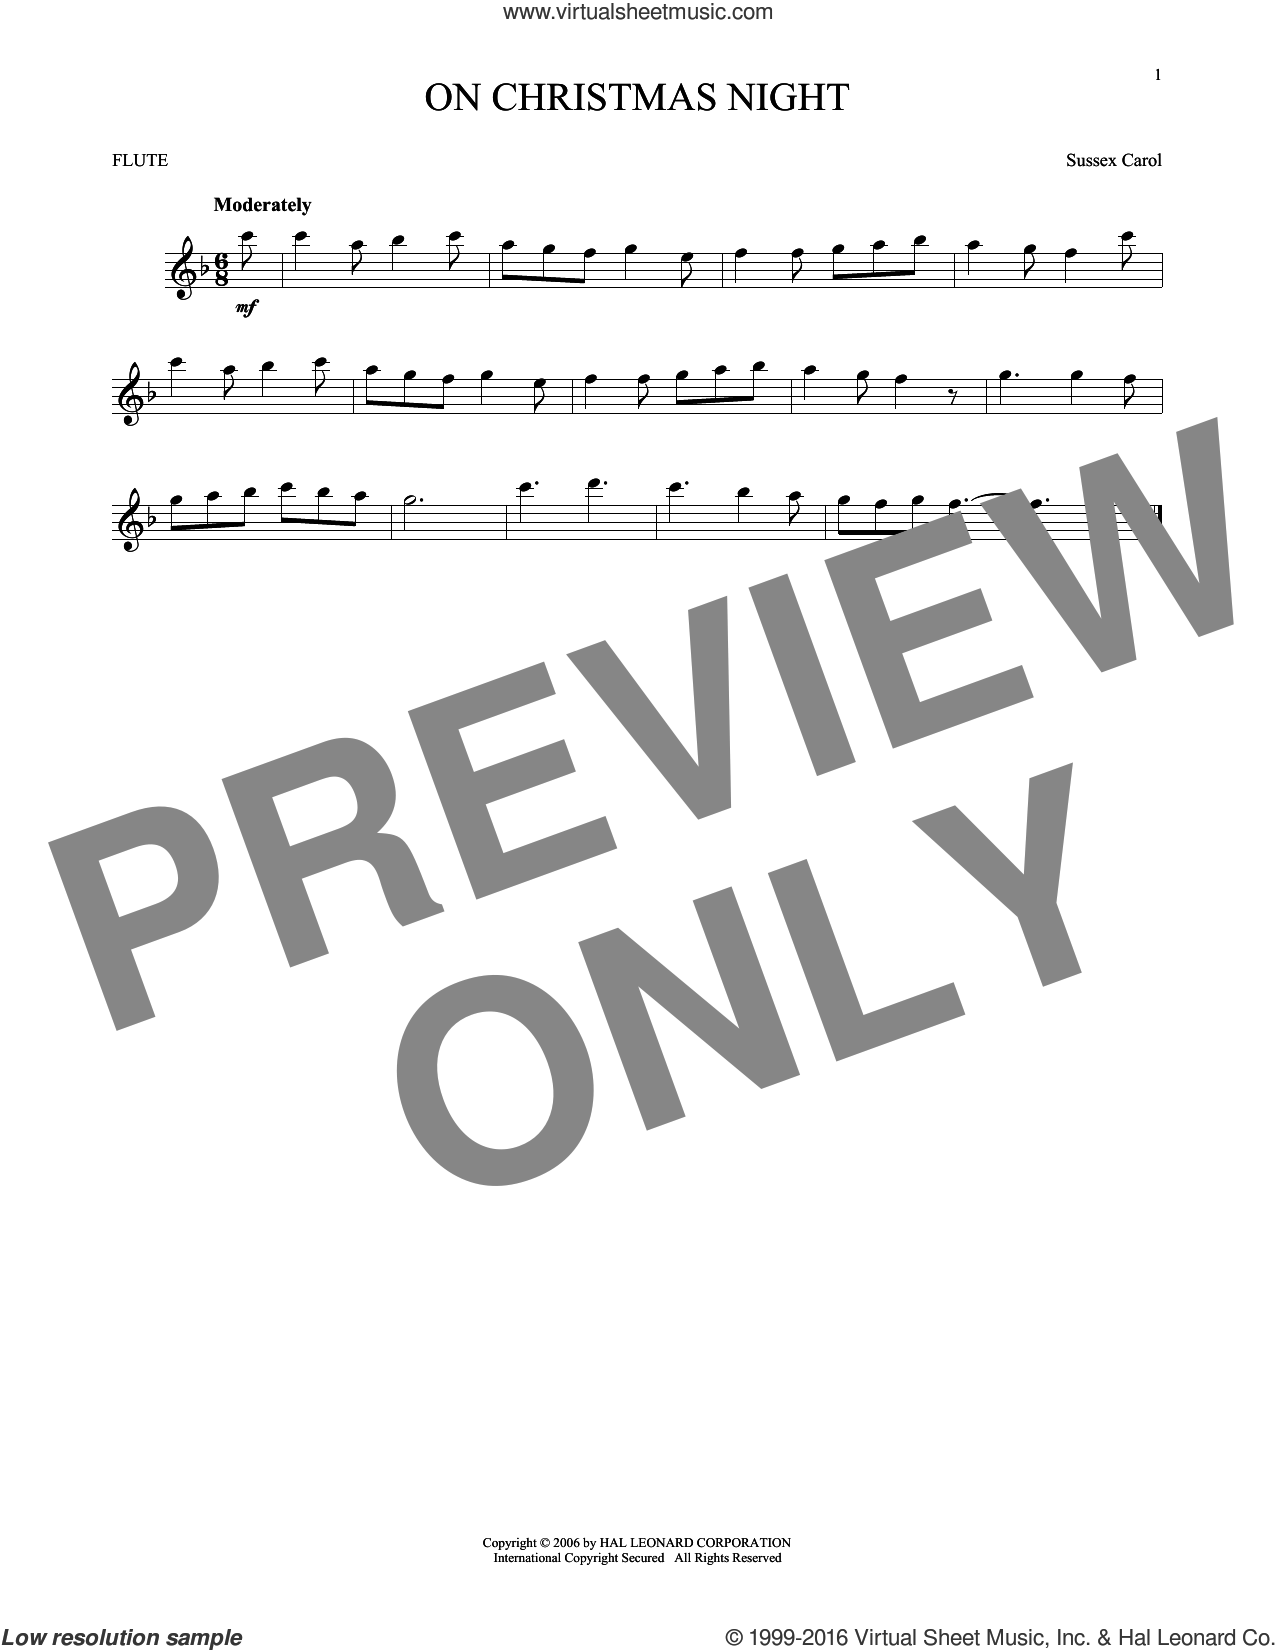 On Christmas Night sheet music for flute solo, intermediate skill level